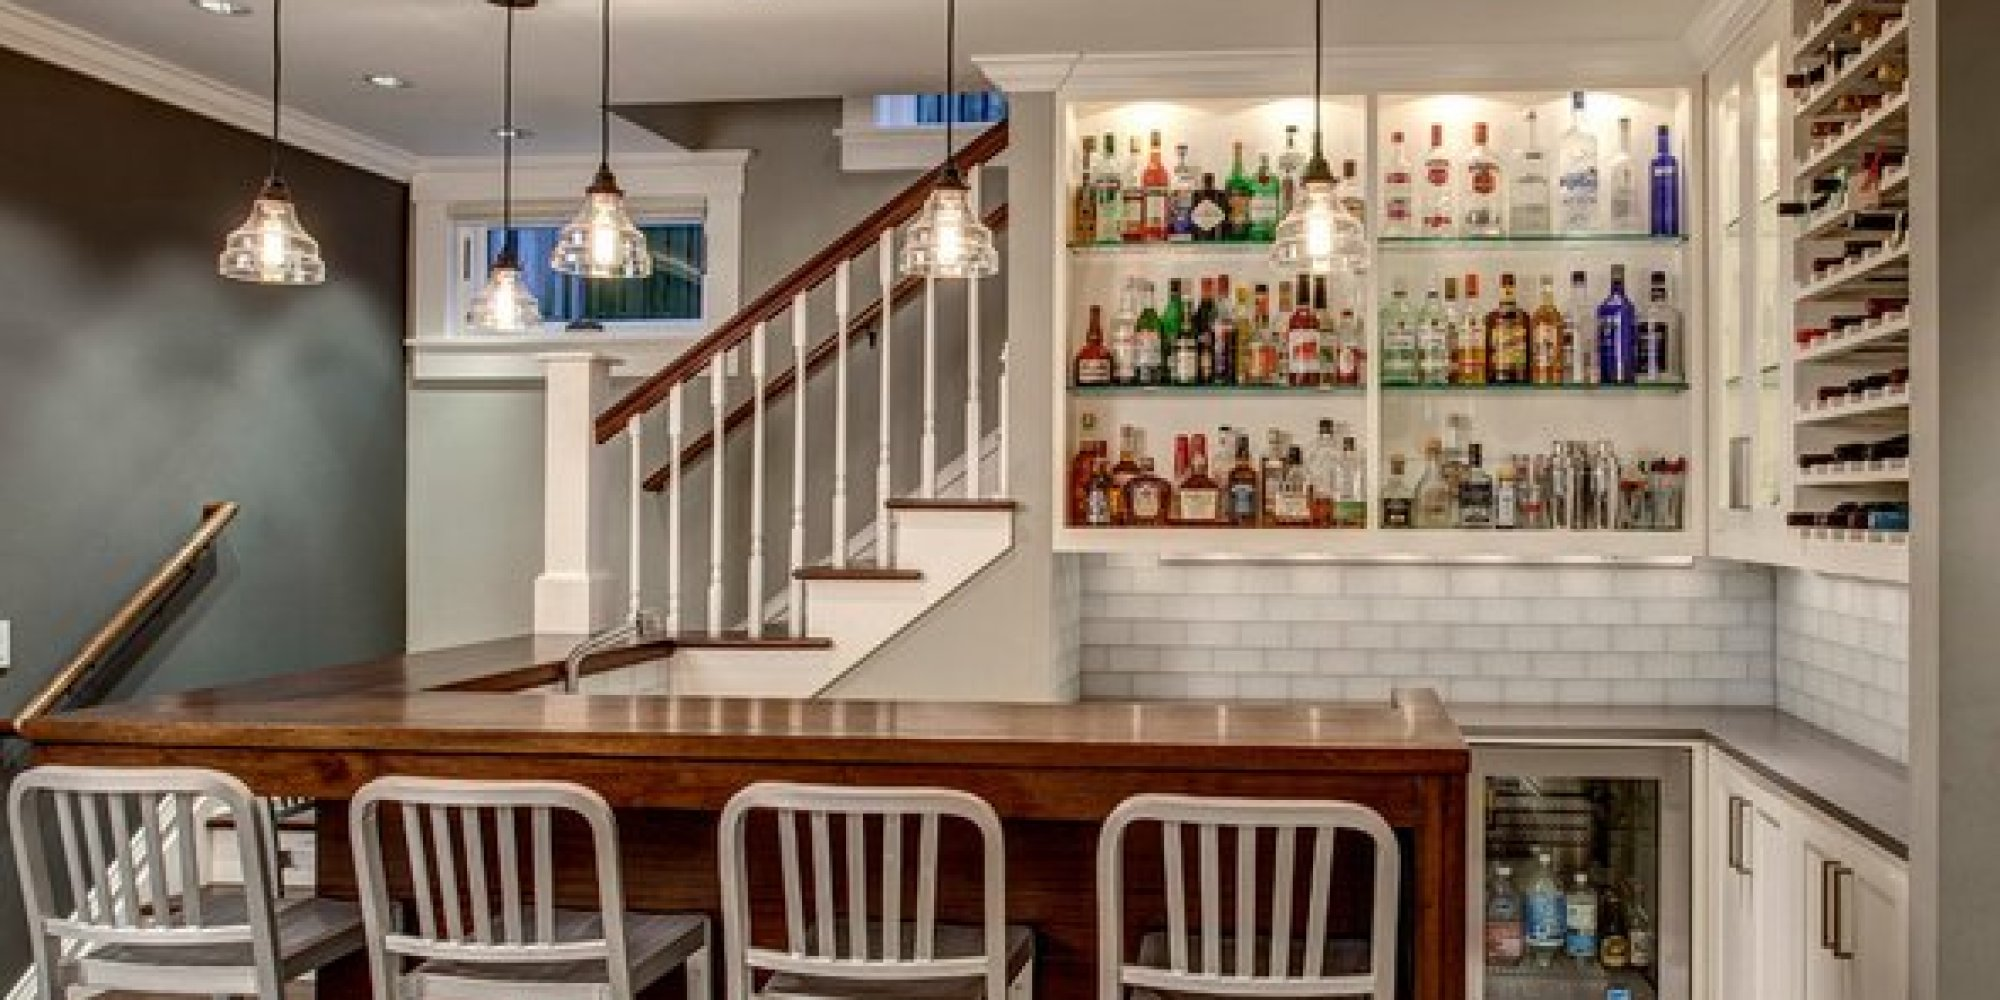 Cool basement bar ideas 18 decoration idea for Design your own basement online free